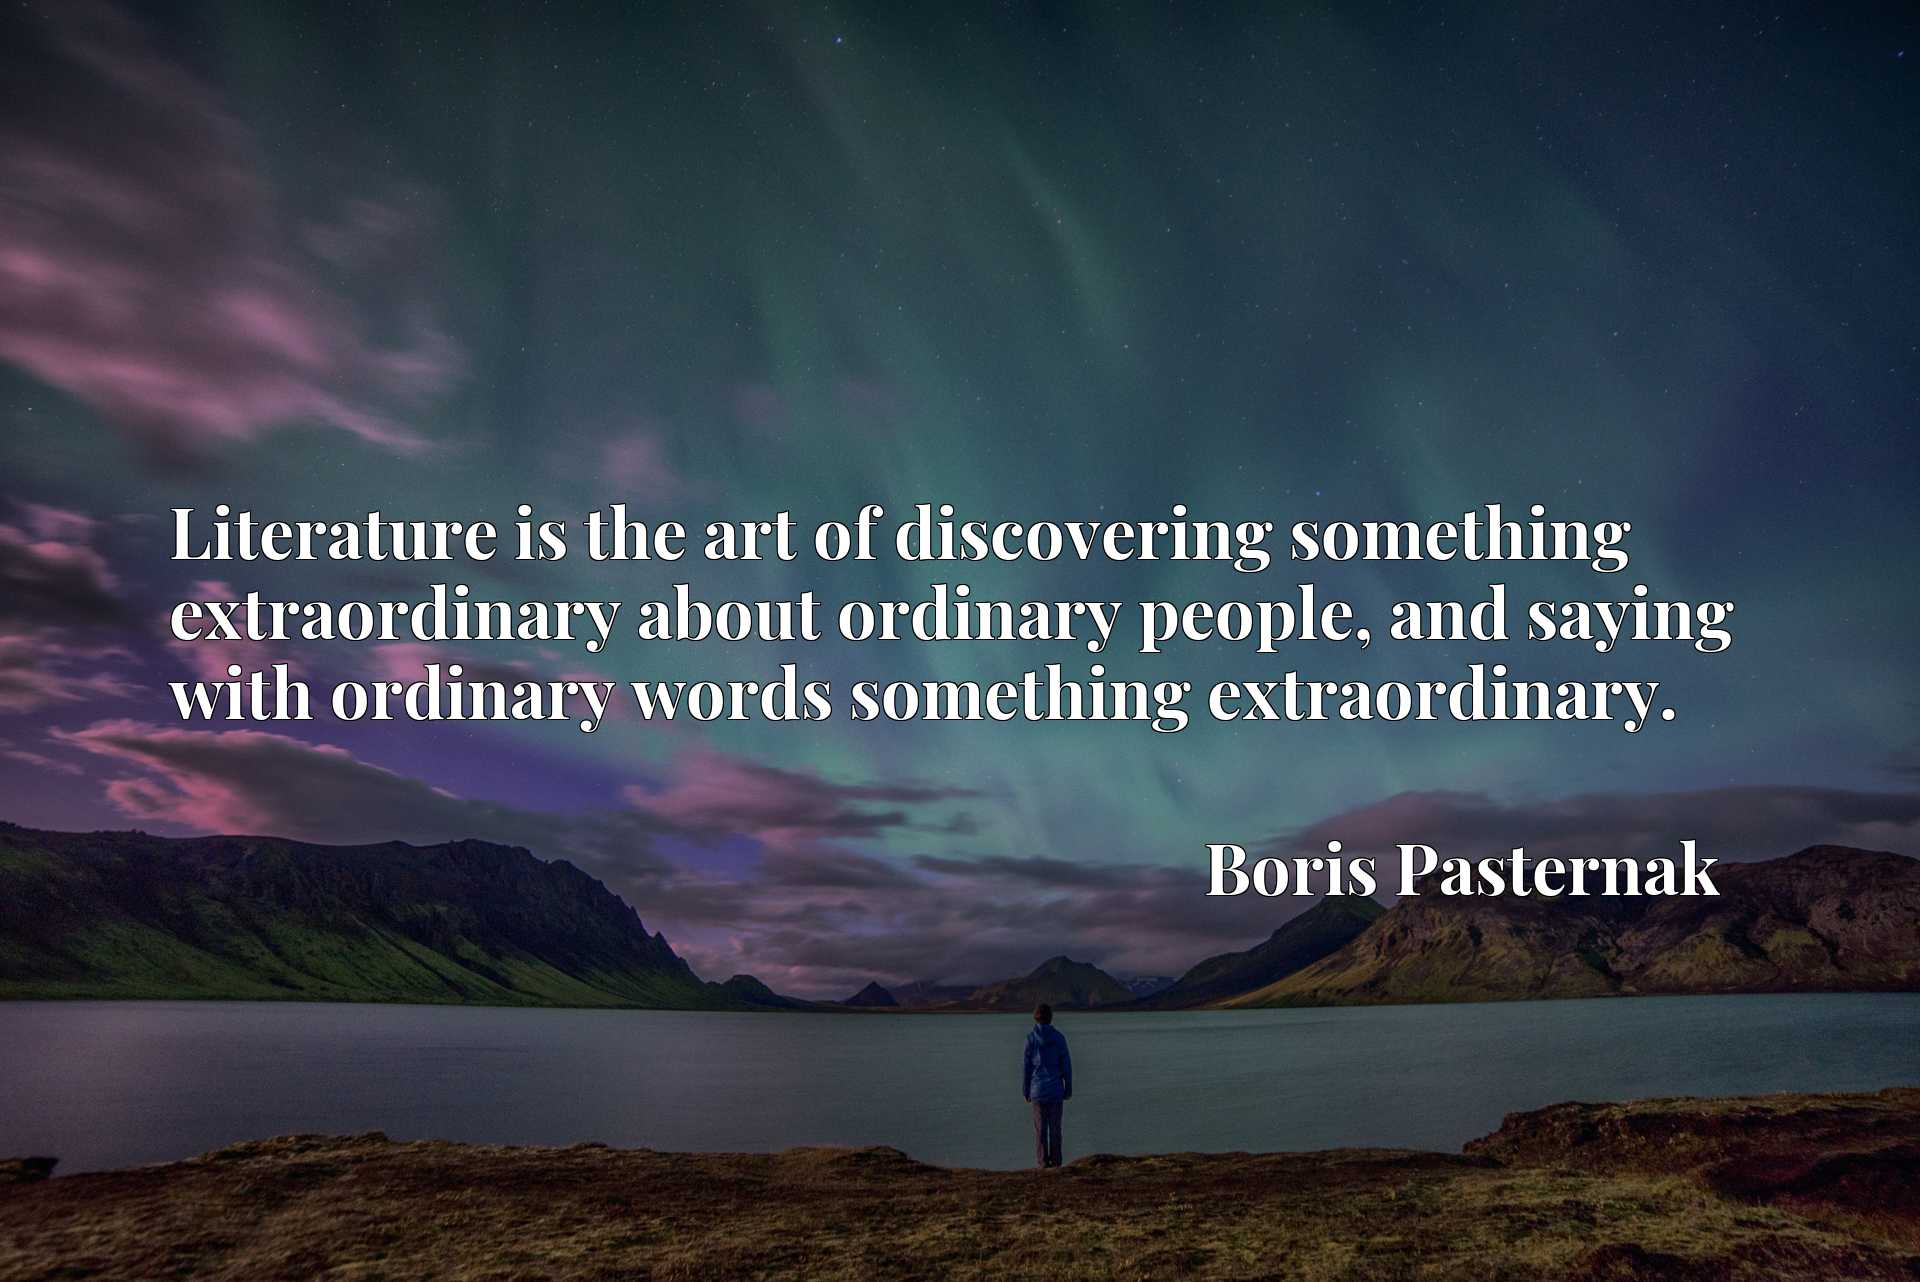 Literature is the art of discovering something extraordinary about ordinary people, and saying with ordinary words something extraordinary.